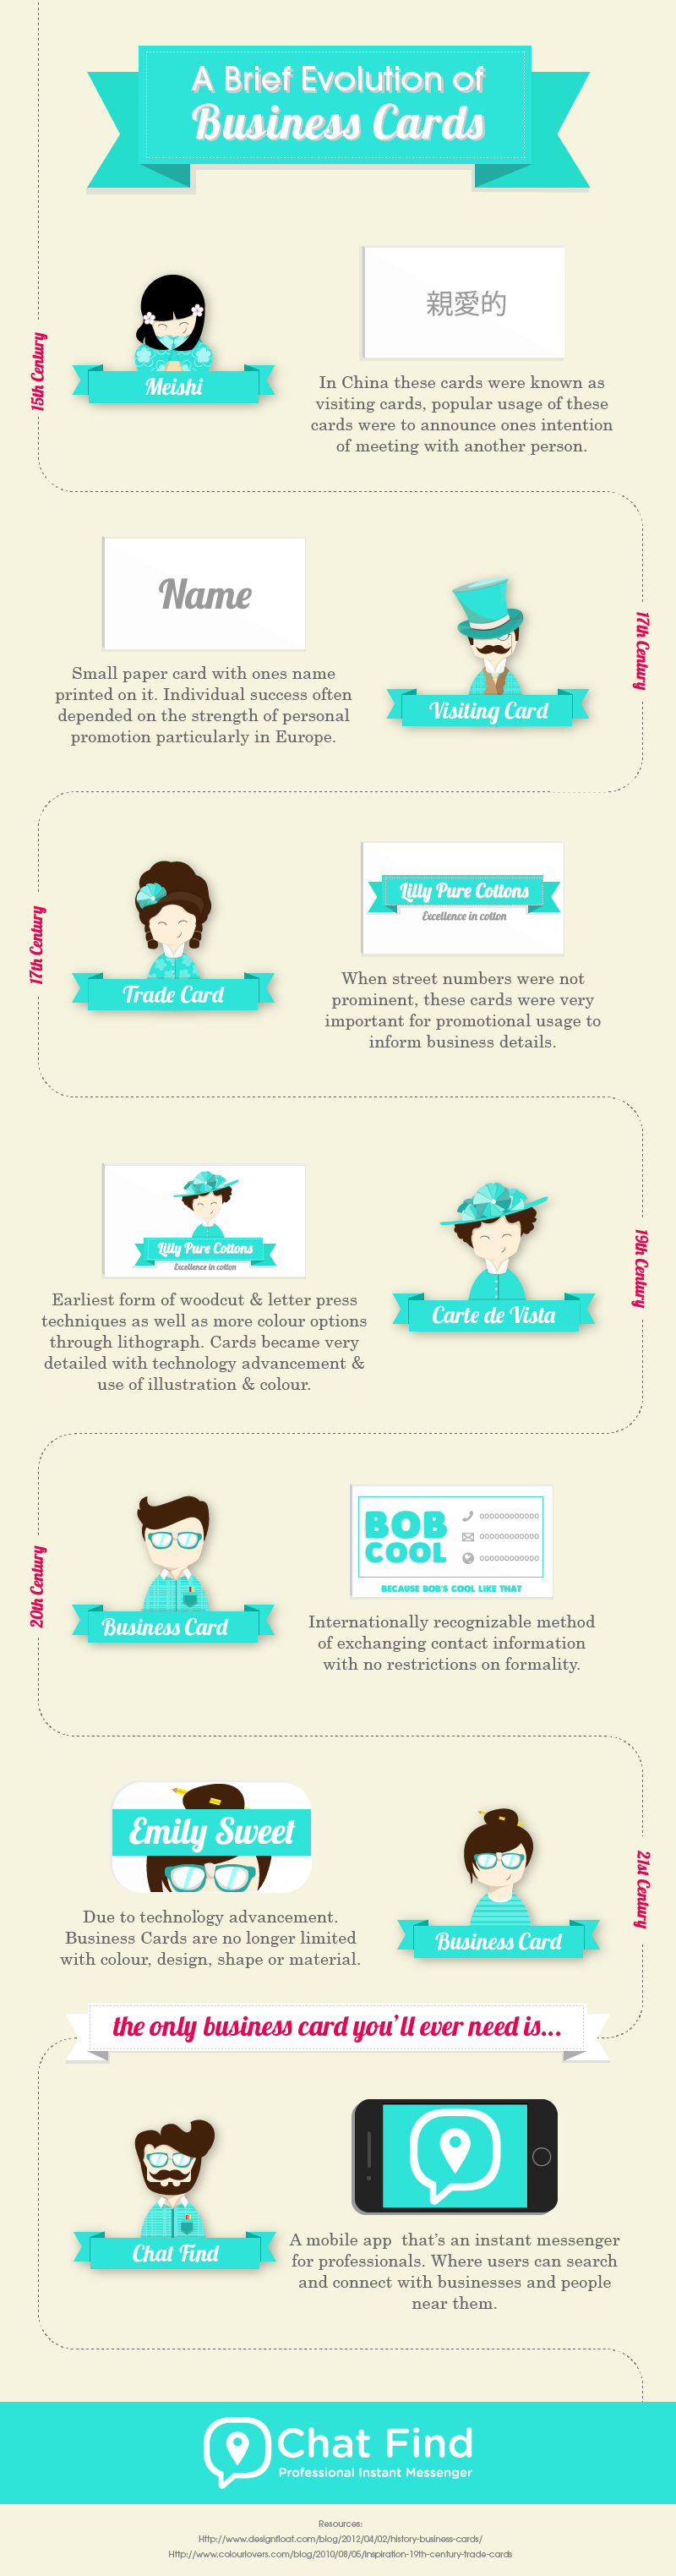 Brief history of business cards. #infographic #business #timeline ...